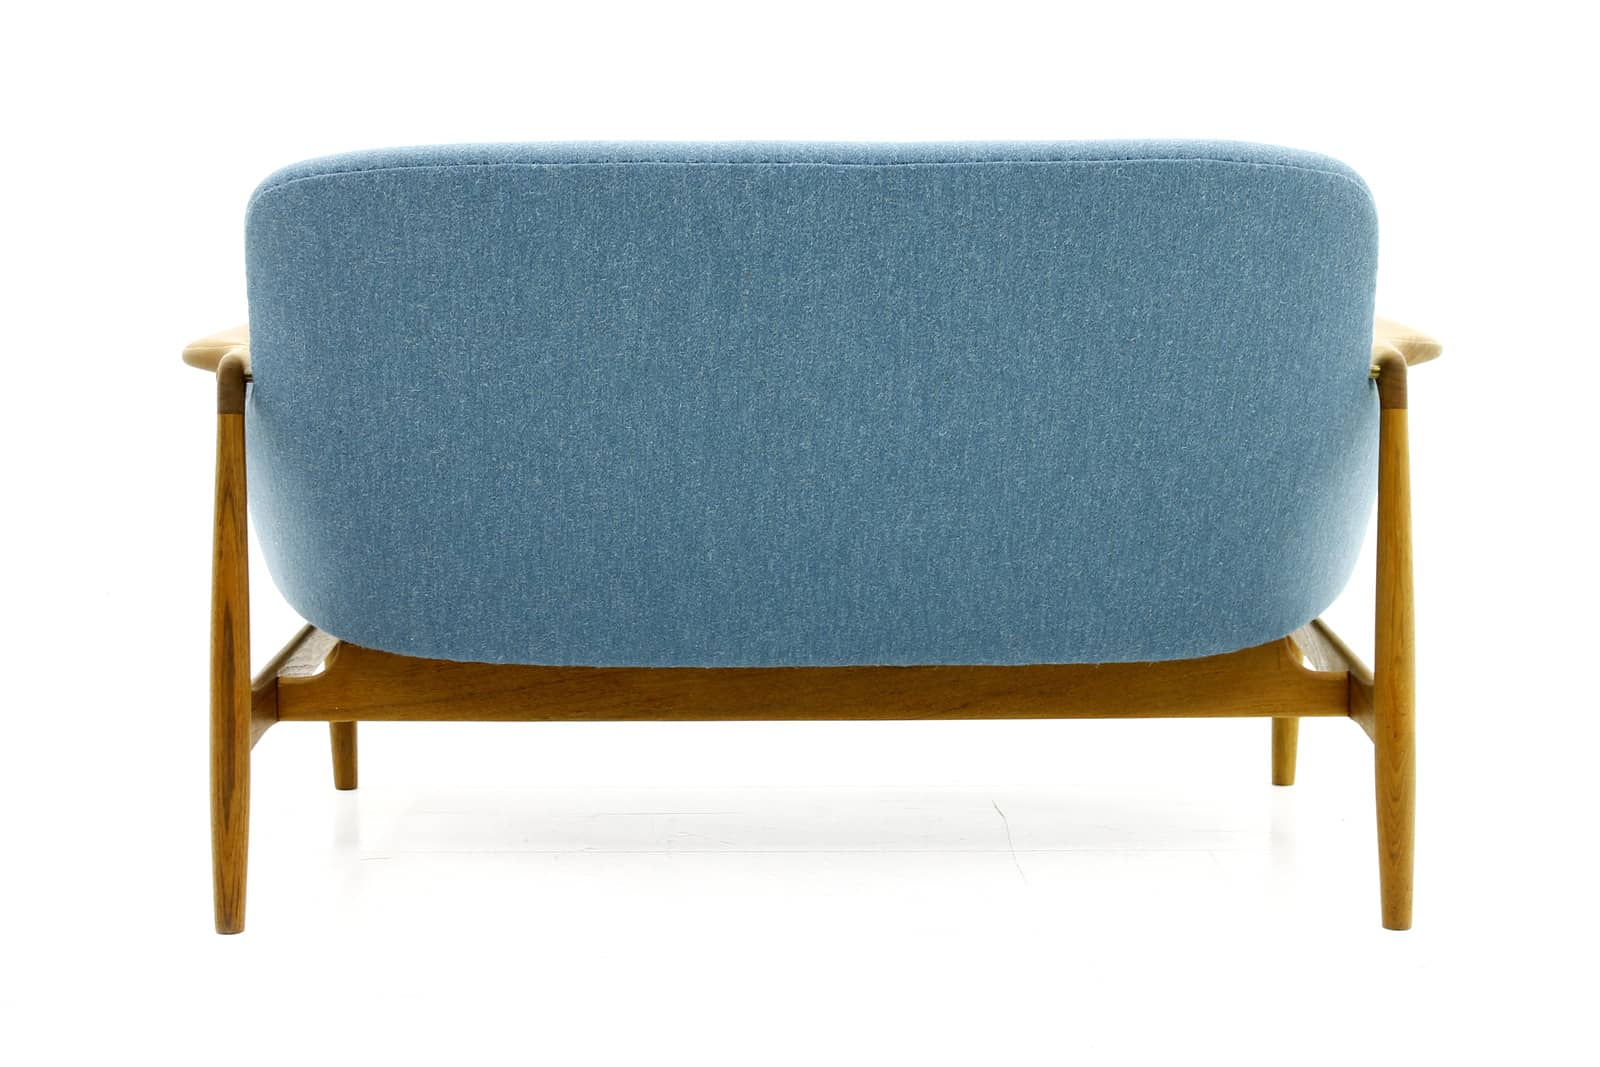 Finn Juhl Two-Seat Sofa NV 53 for Niels Vodder, 1953